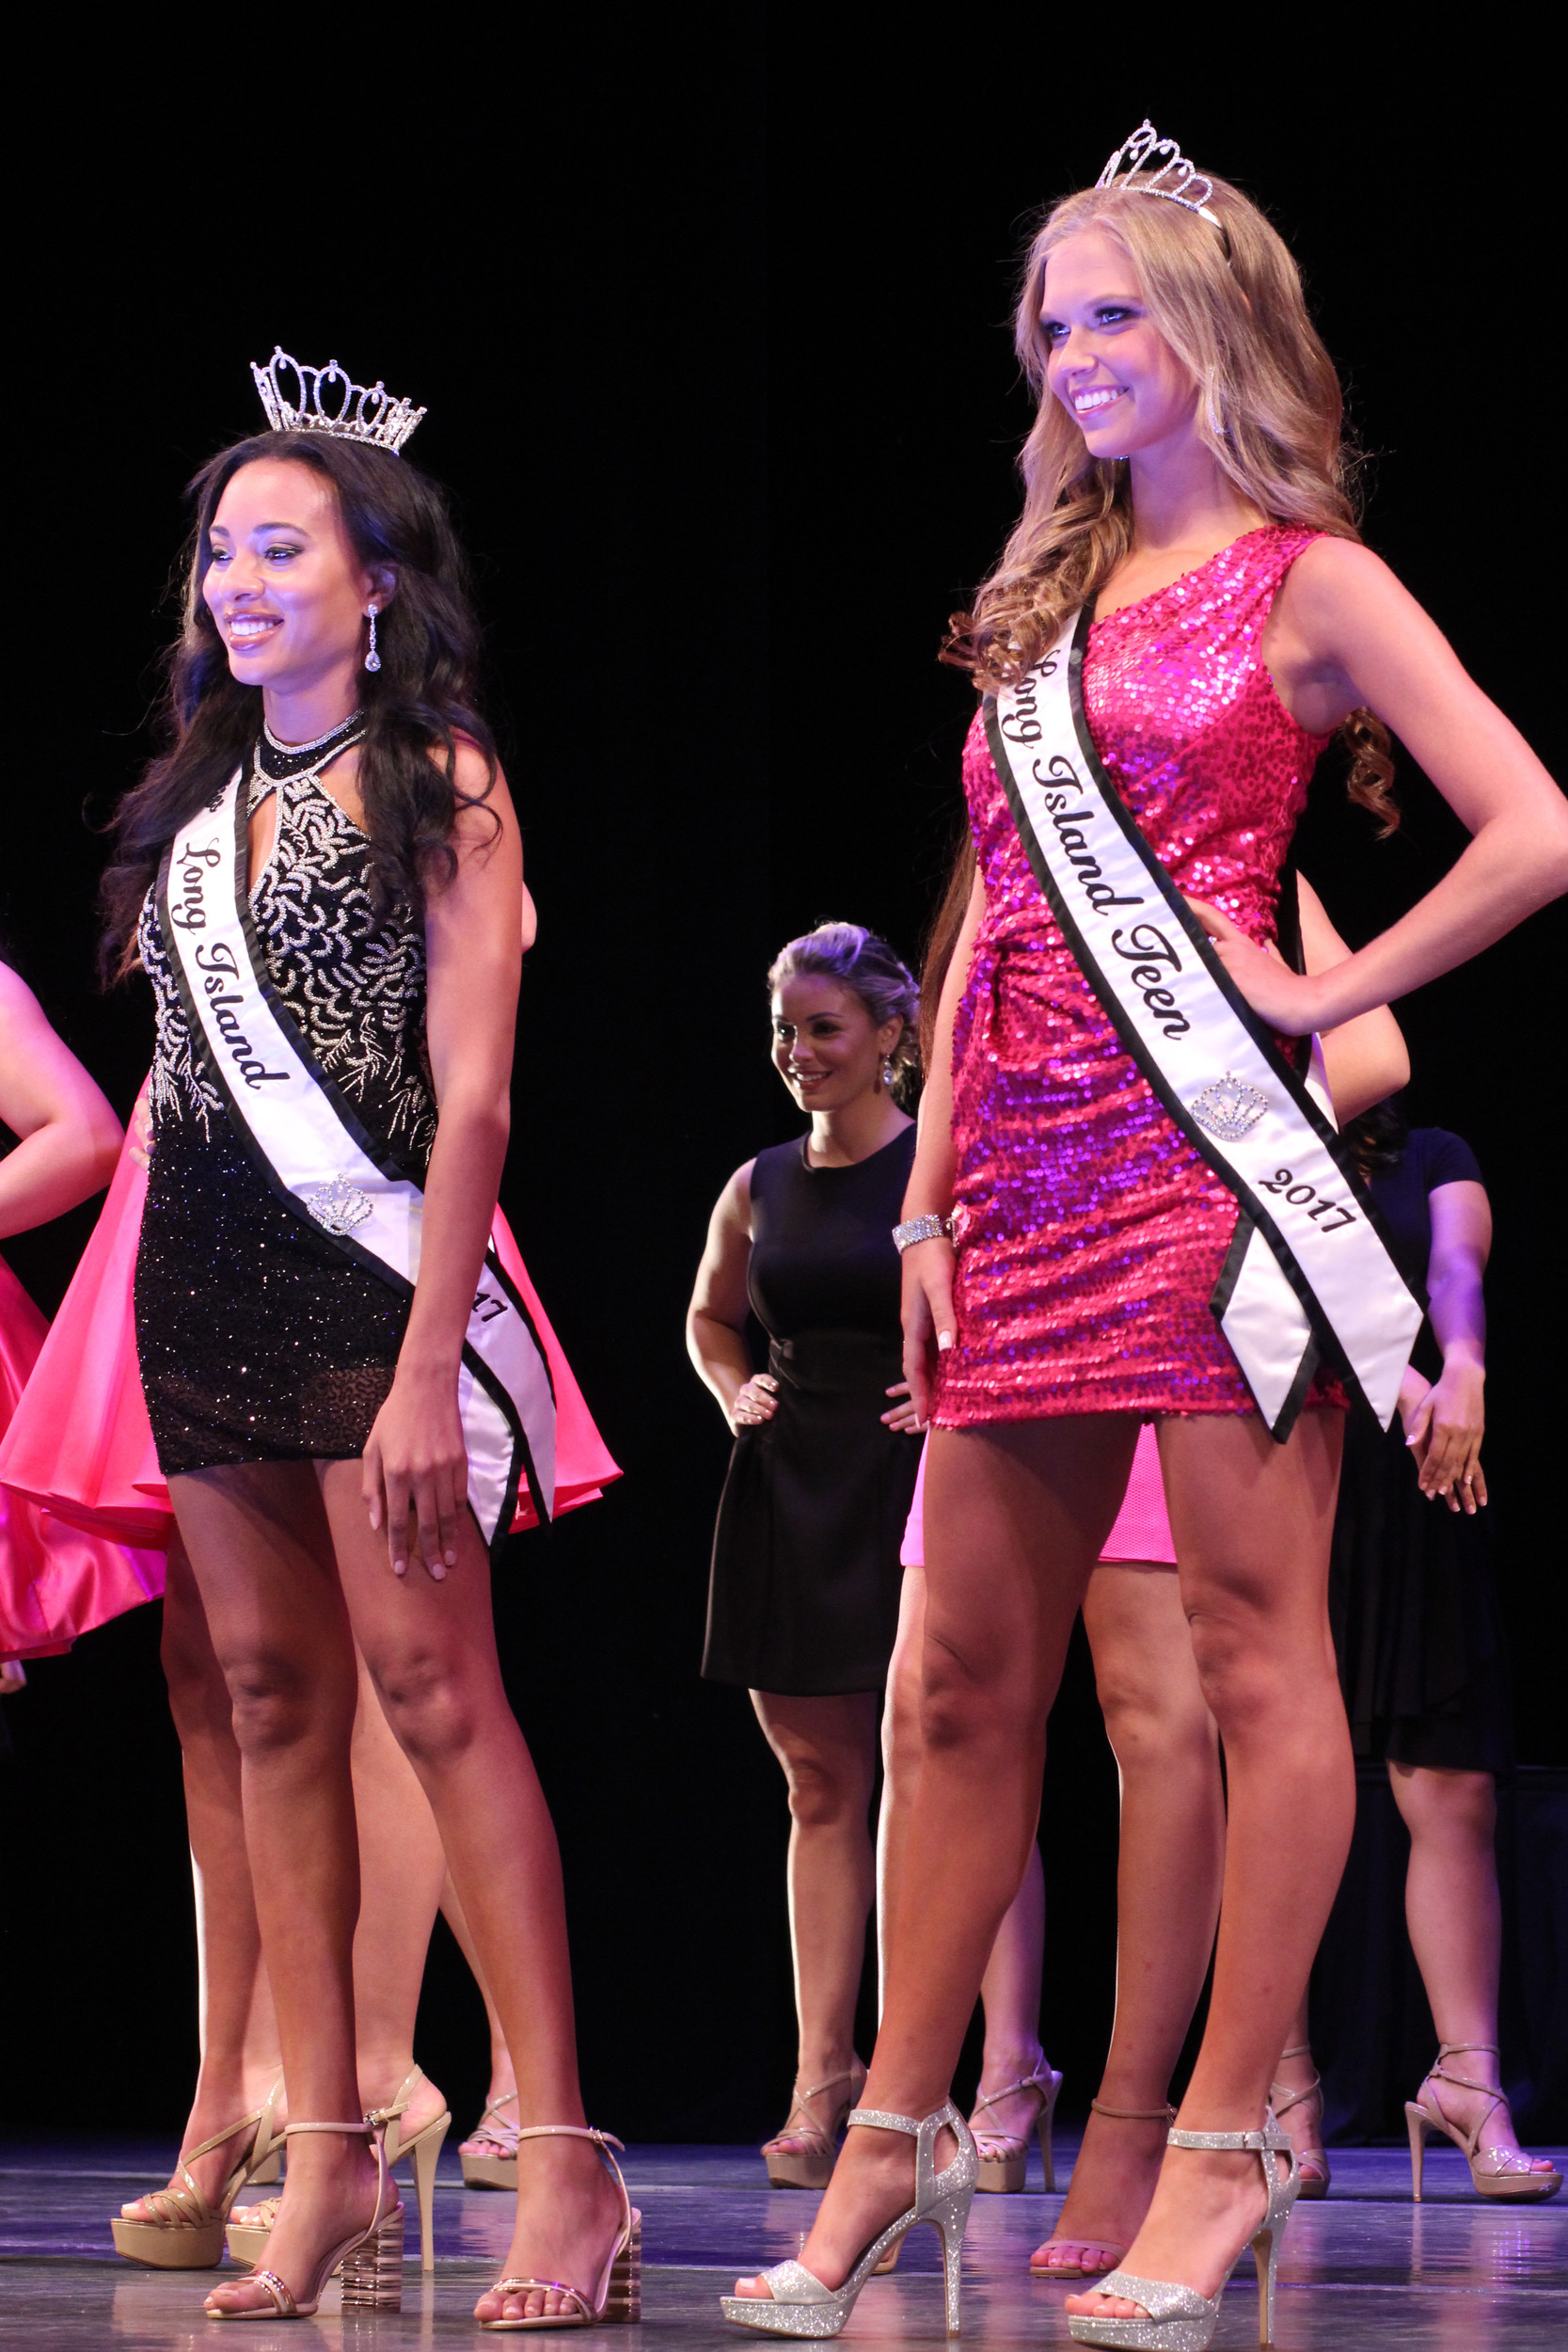 Past winners, Miss Long Island 2017 Ashley Edwards, left, and Miss Long Island Teen 2017 Taylor Yaeger took the stage.